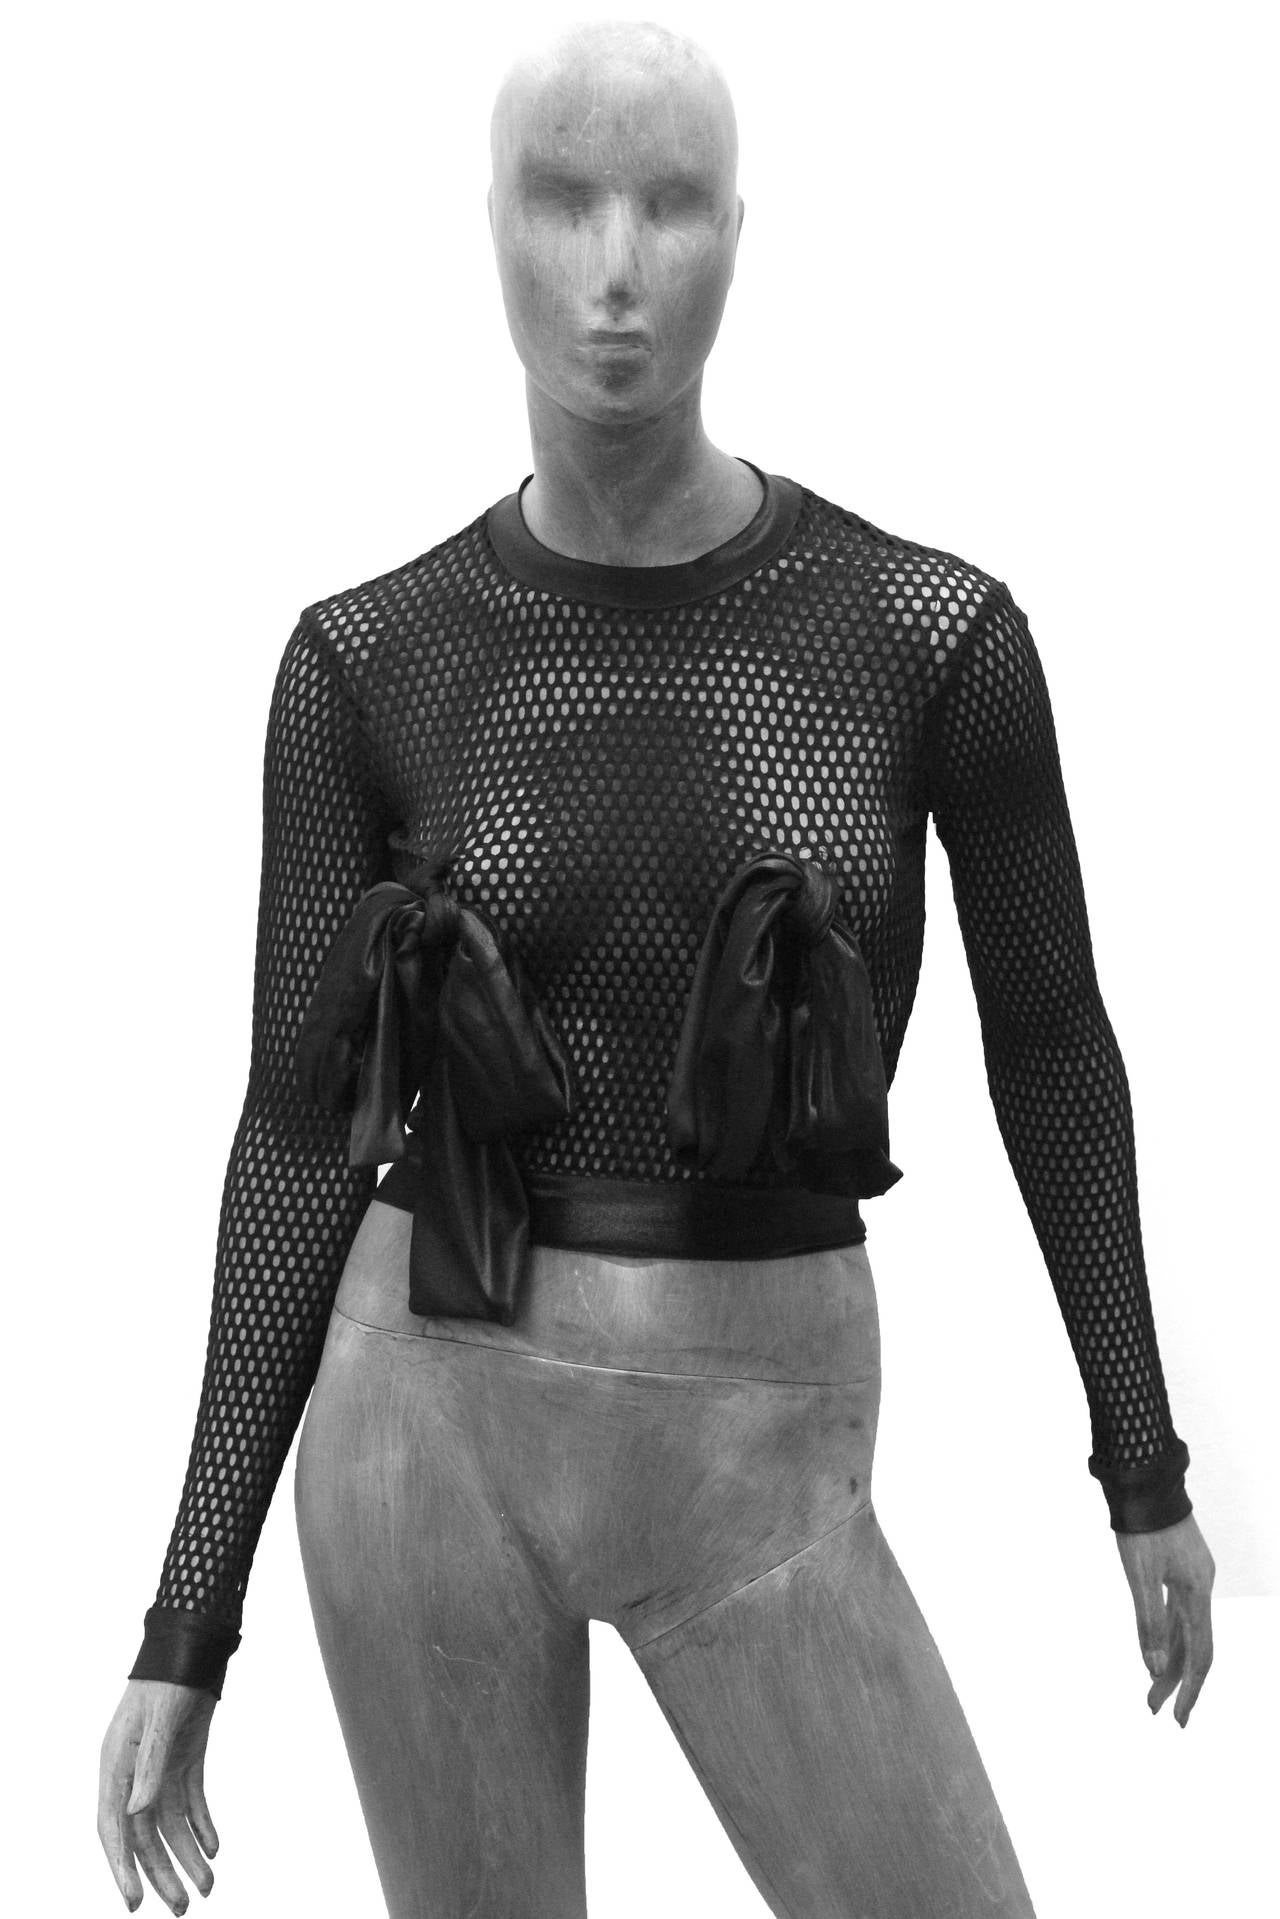 A rare black mesh top by Pam Hogg from London design Pam Hog, made in the 1990s. 